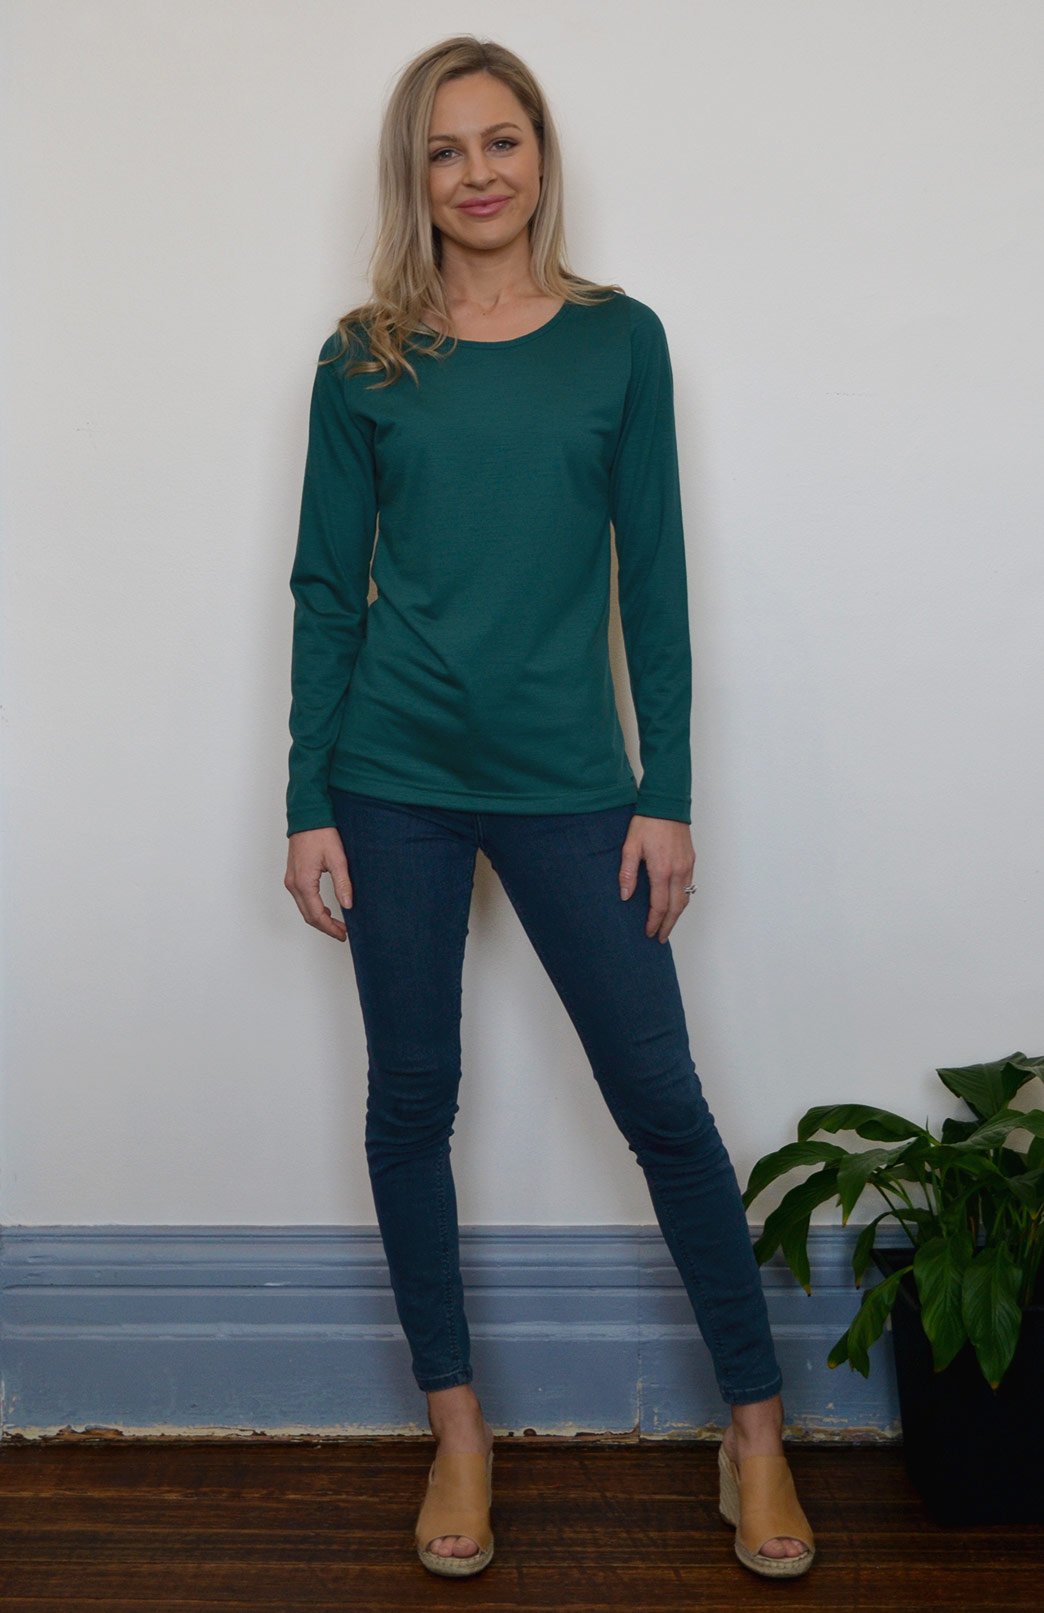 Round Neck Top (Plain) - Women's Lightweight Merino Wool Emerald Green Long Sleeved Round Neck Top - Smitten Merino Tasmania Australia